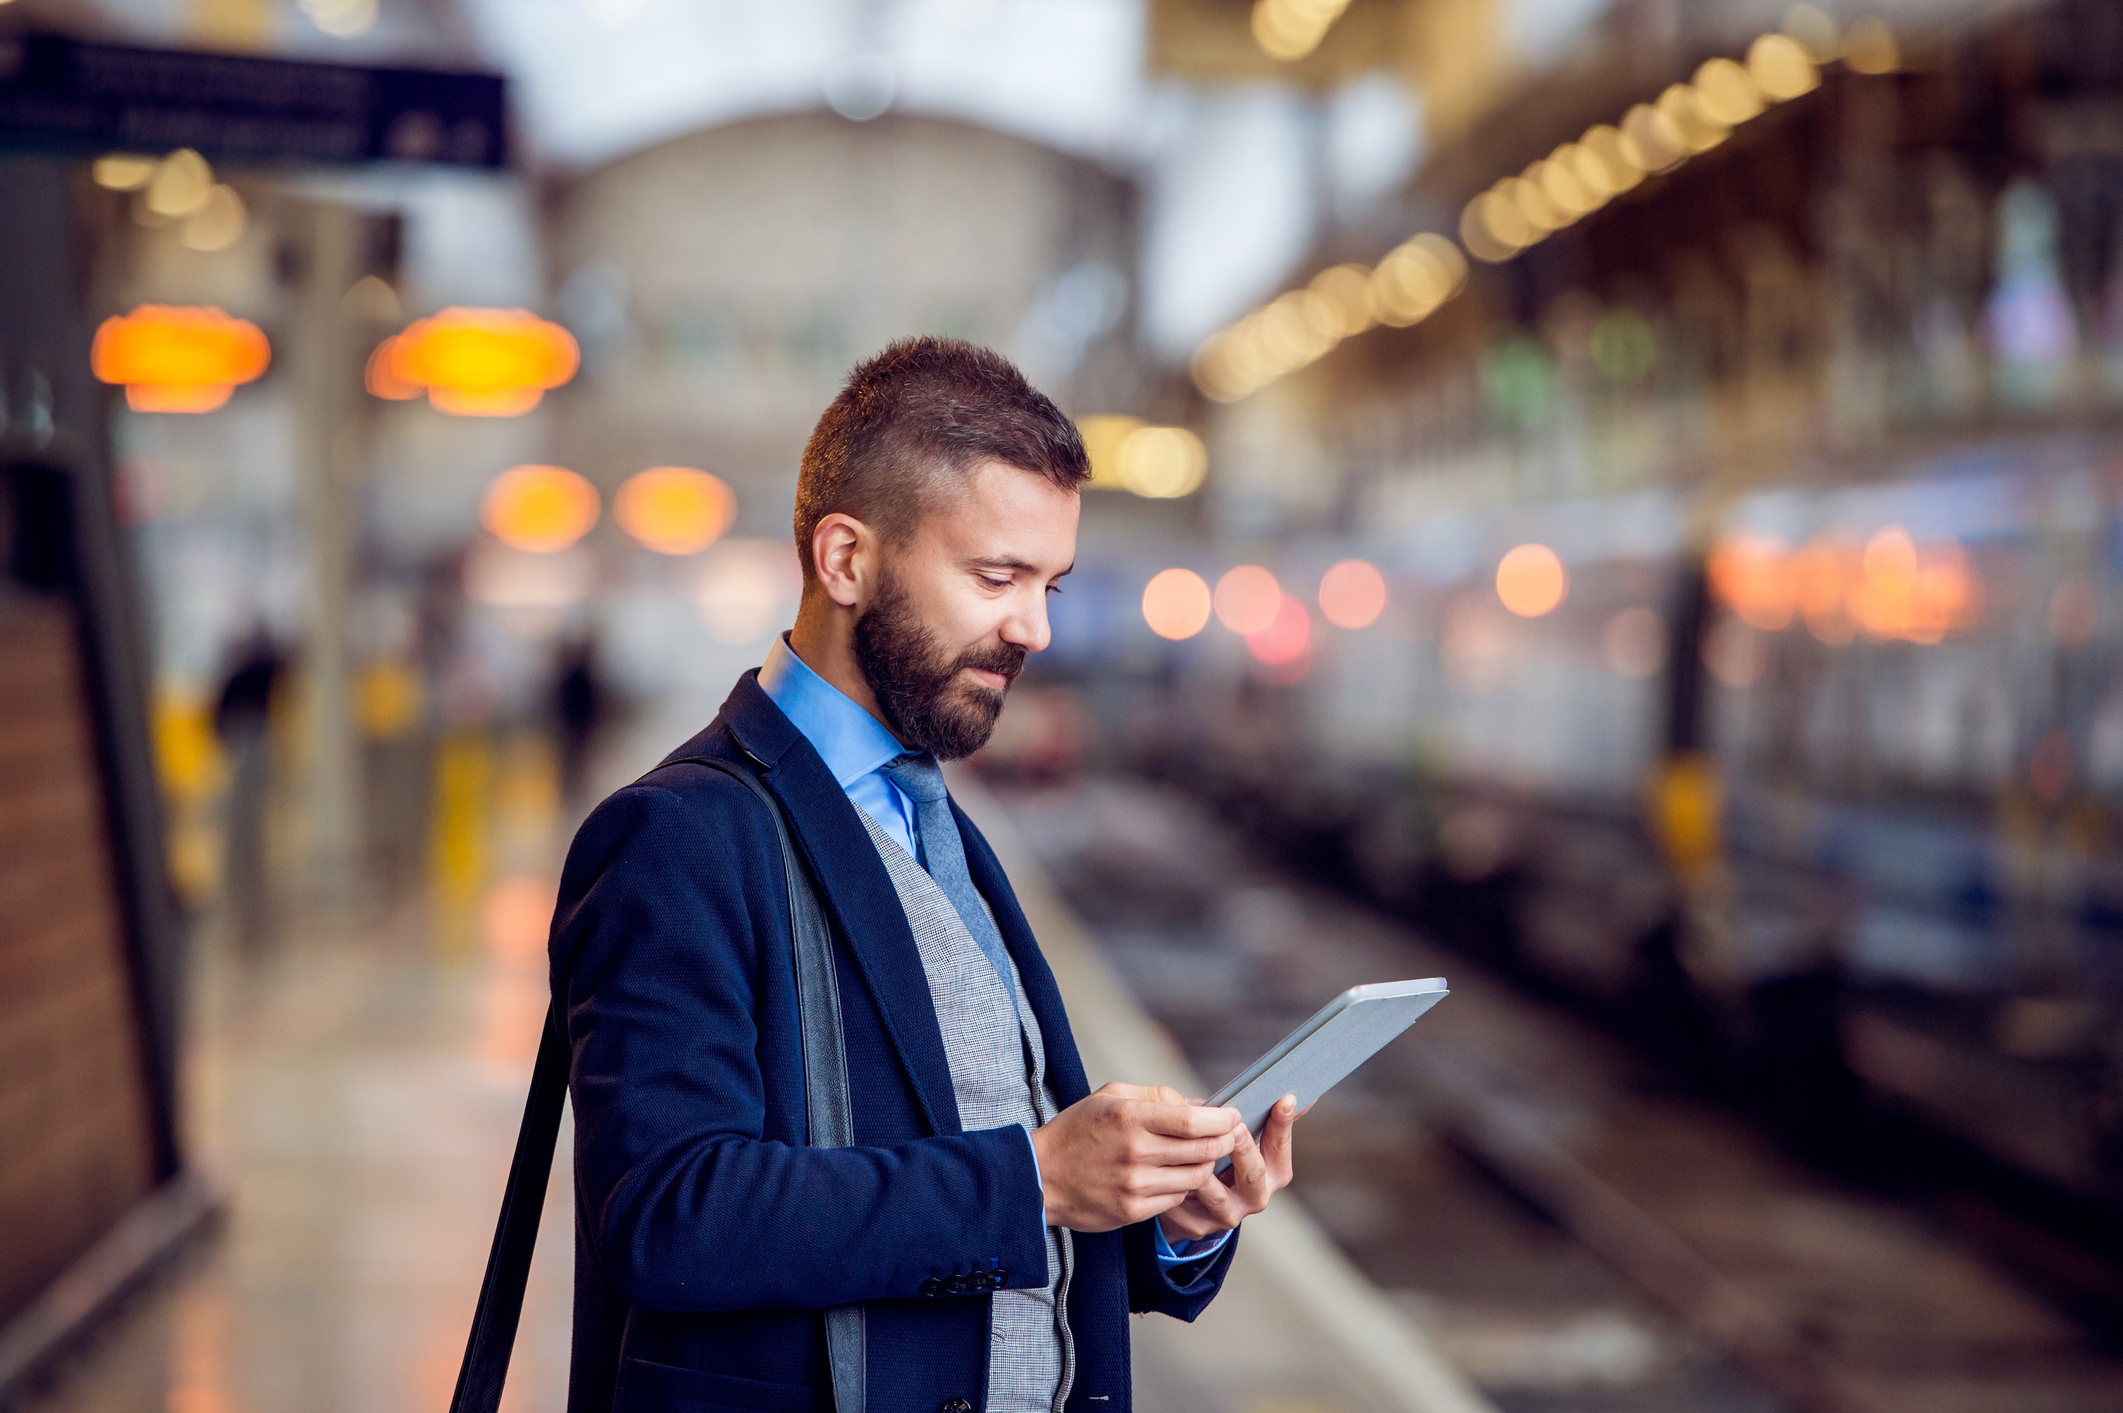 Hipster businessman with tablet, waiting at the train station platform